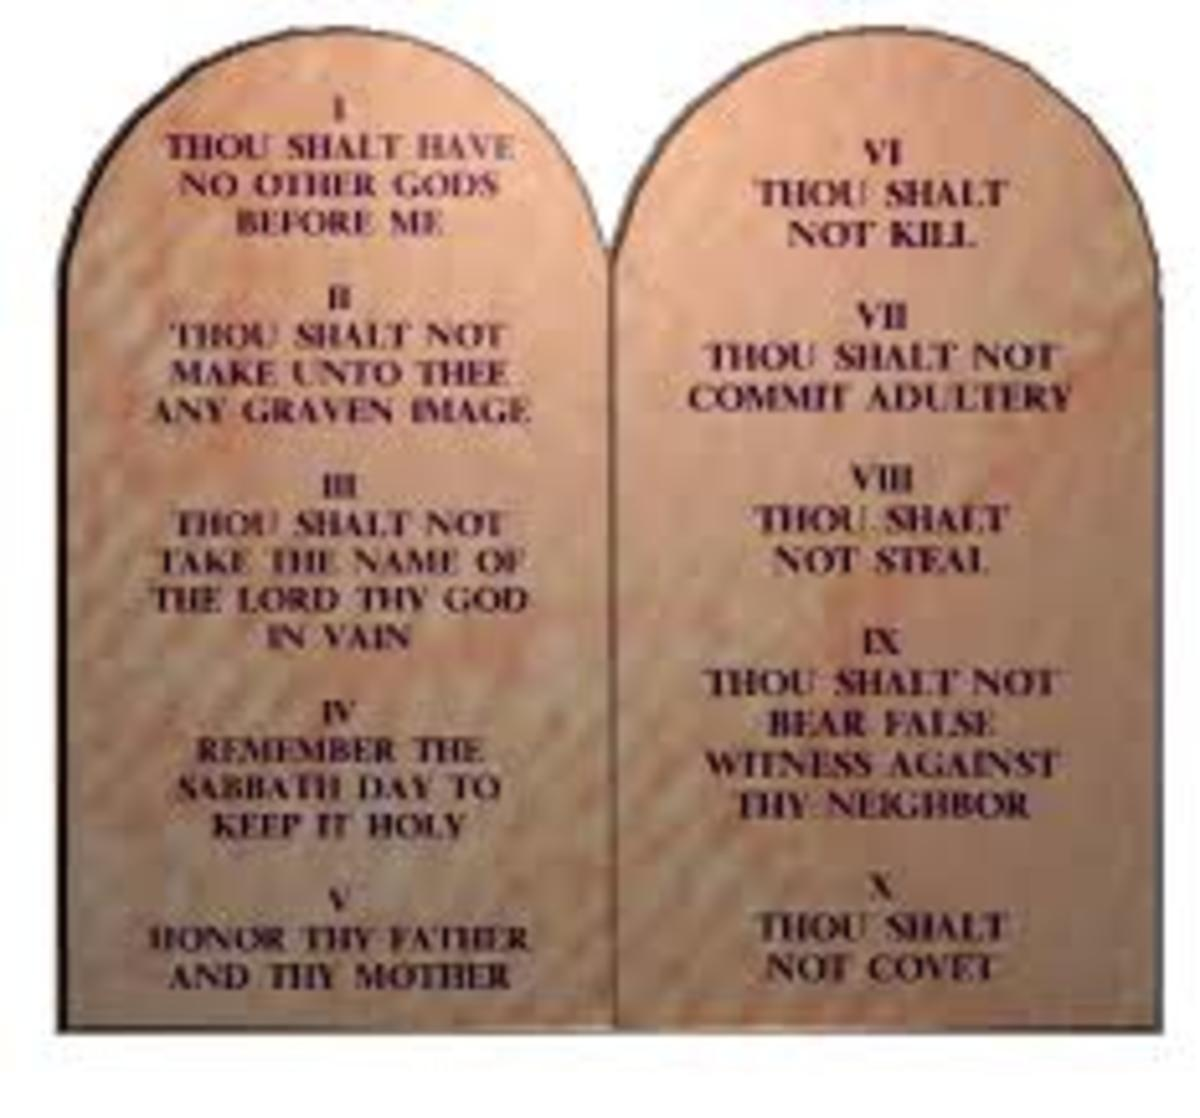 These are the tables of  The Ten Commandment of God according to the Bible, so, any religion that derives from the Bible should follow them, but the Islamic people are ignoring some of them and twisting their meanings.